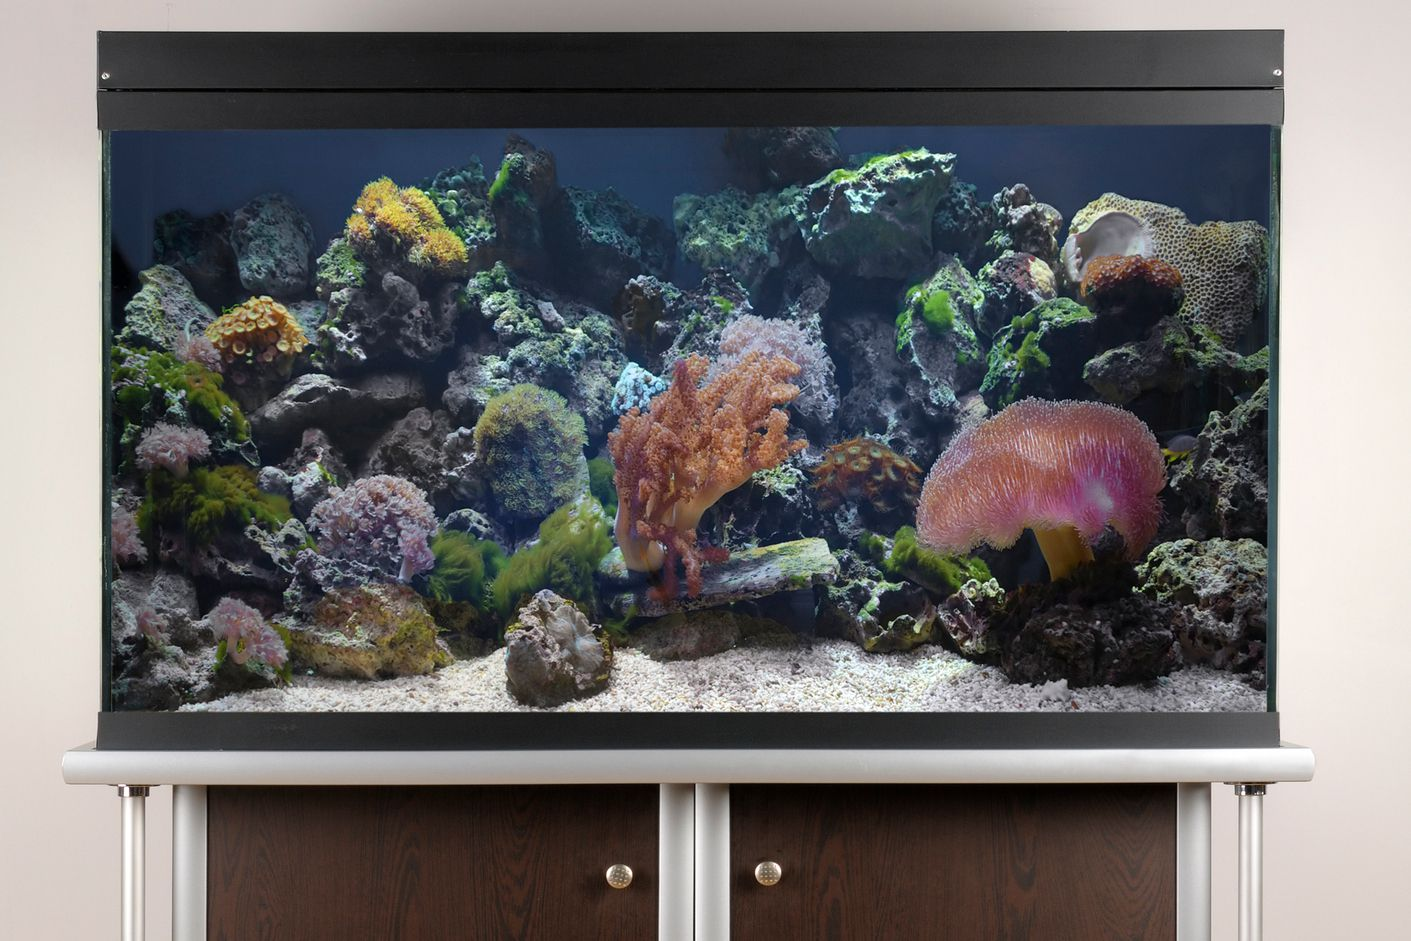 10 Easy Saltwater Aquarium Set Up Steps